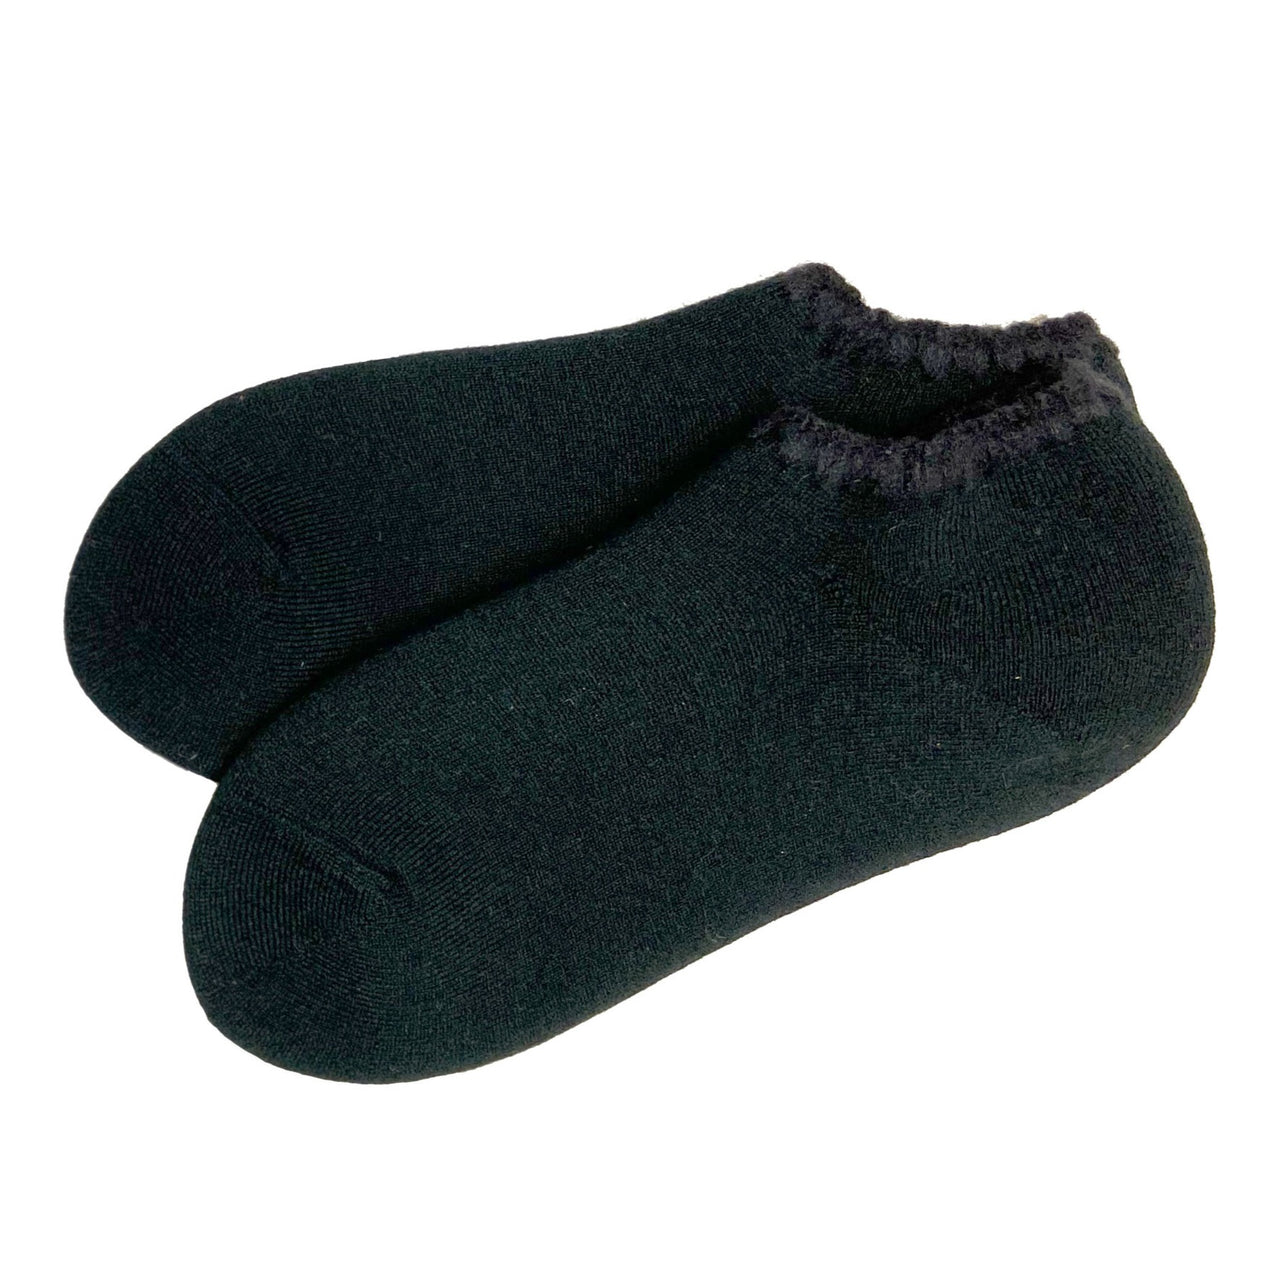 CHERRYSTONE® Slipper Socks with Grips | Size Large | Onyx Black - CHERRYSTONE by MARKET TO JAPAN LLC